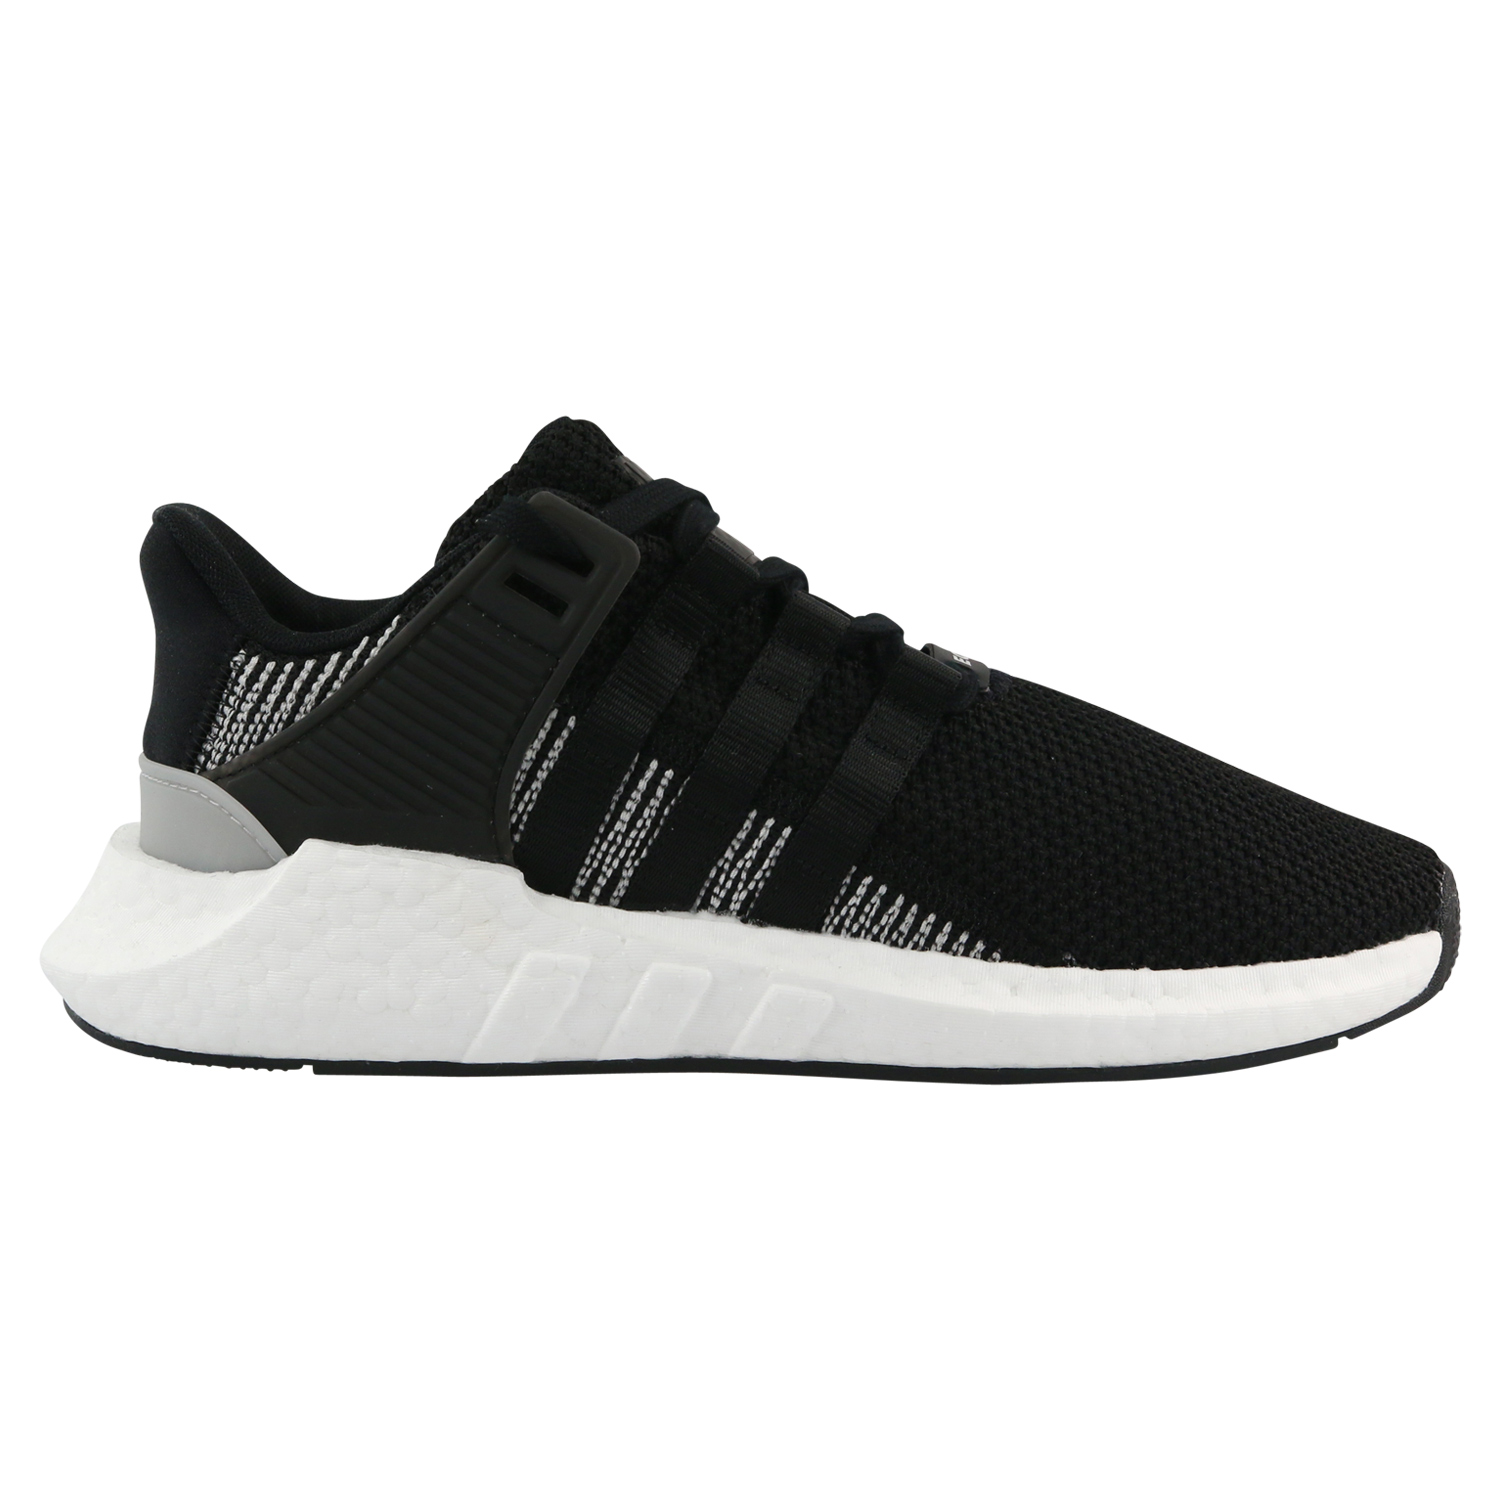 adidas originals eqt equipment support adv rf schuhe. Black Bedroom Furniture Sets. Home Design Ideas